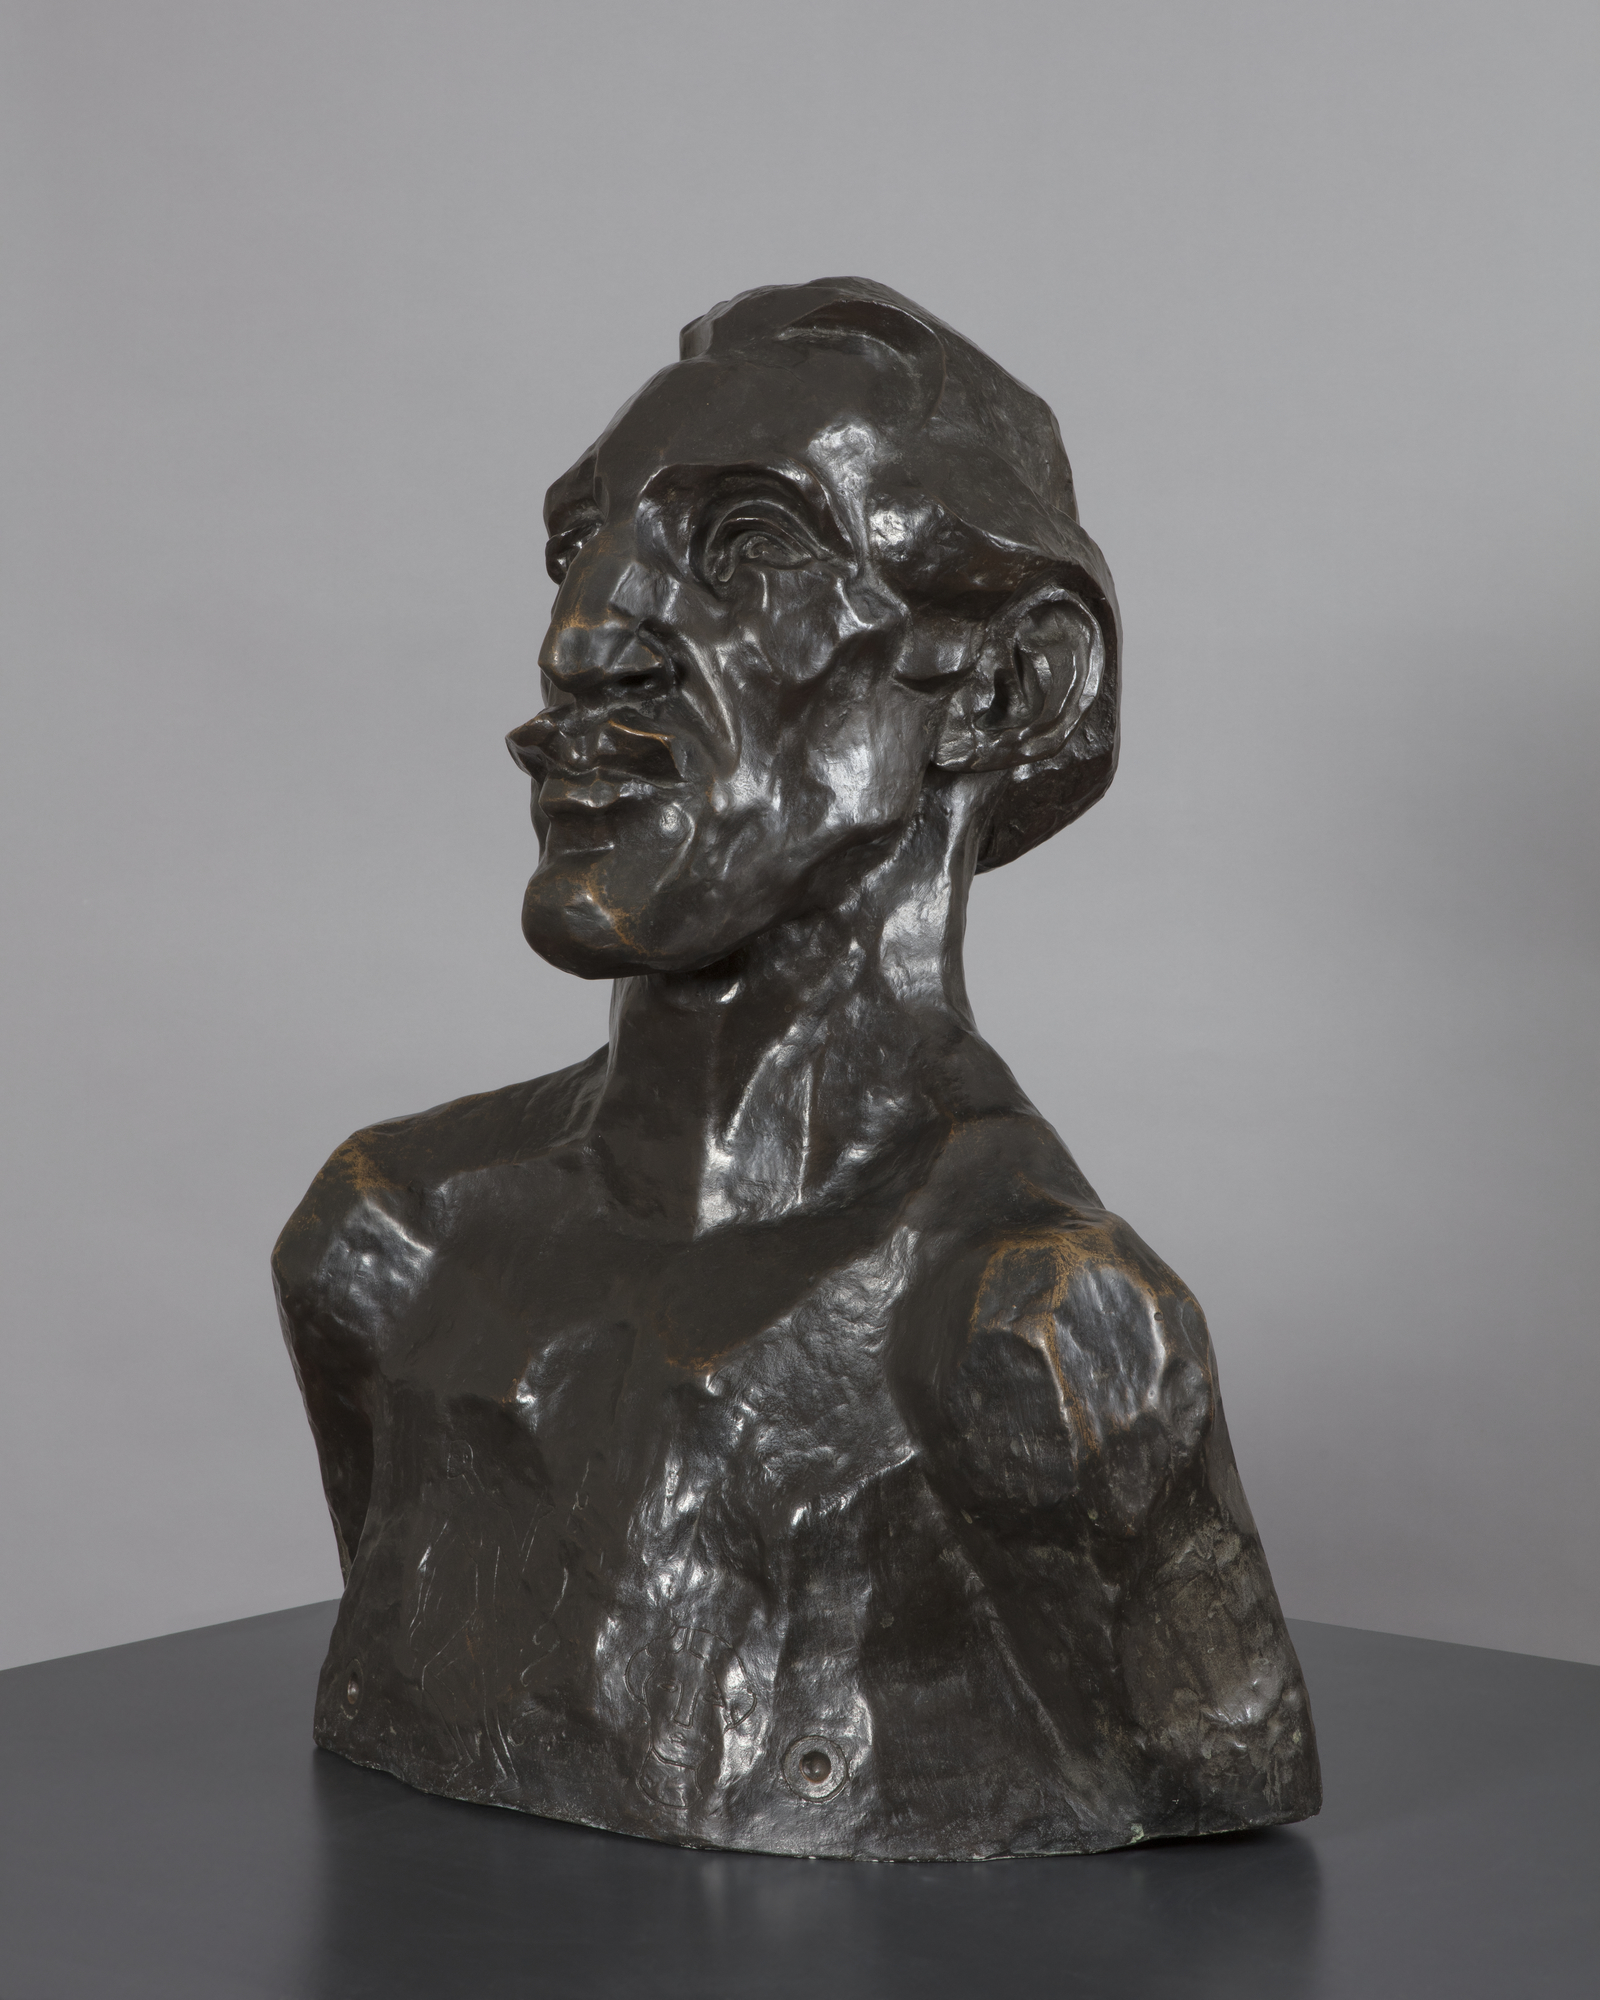 A bronze sculpture of a naked man's head and shoulders, viewed facing half-right , with an angular face and prounced chin, nose and lips as well as a short swept back receding hair style. His bare chest has been scratched to represent a tattooed design.